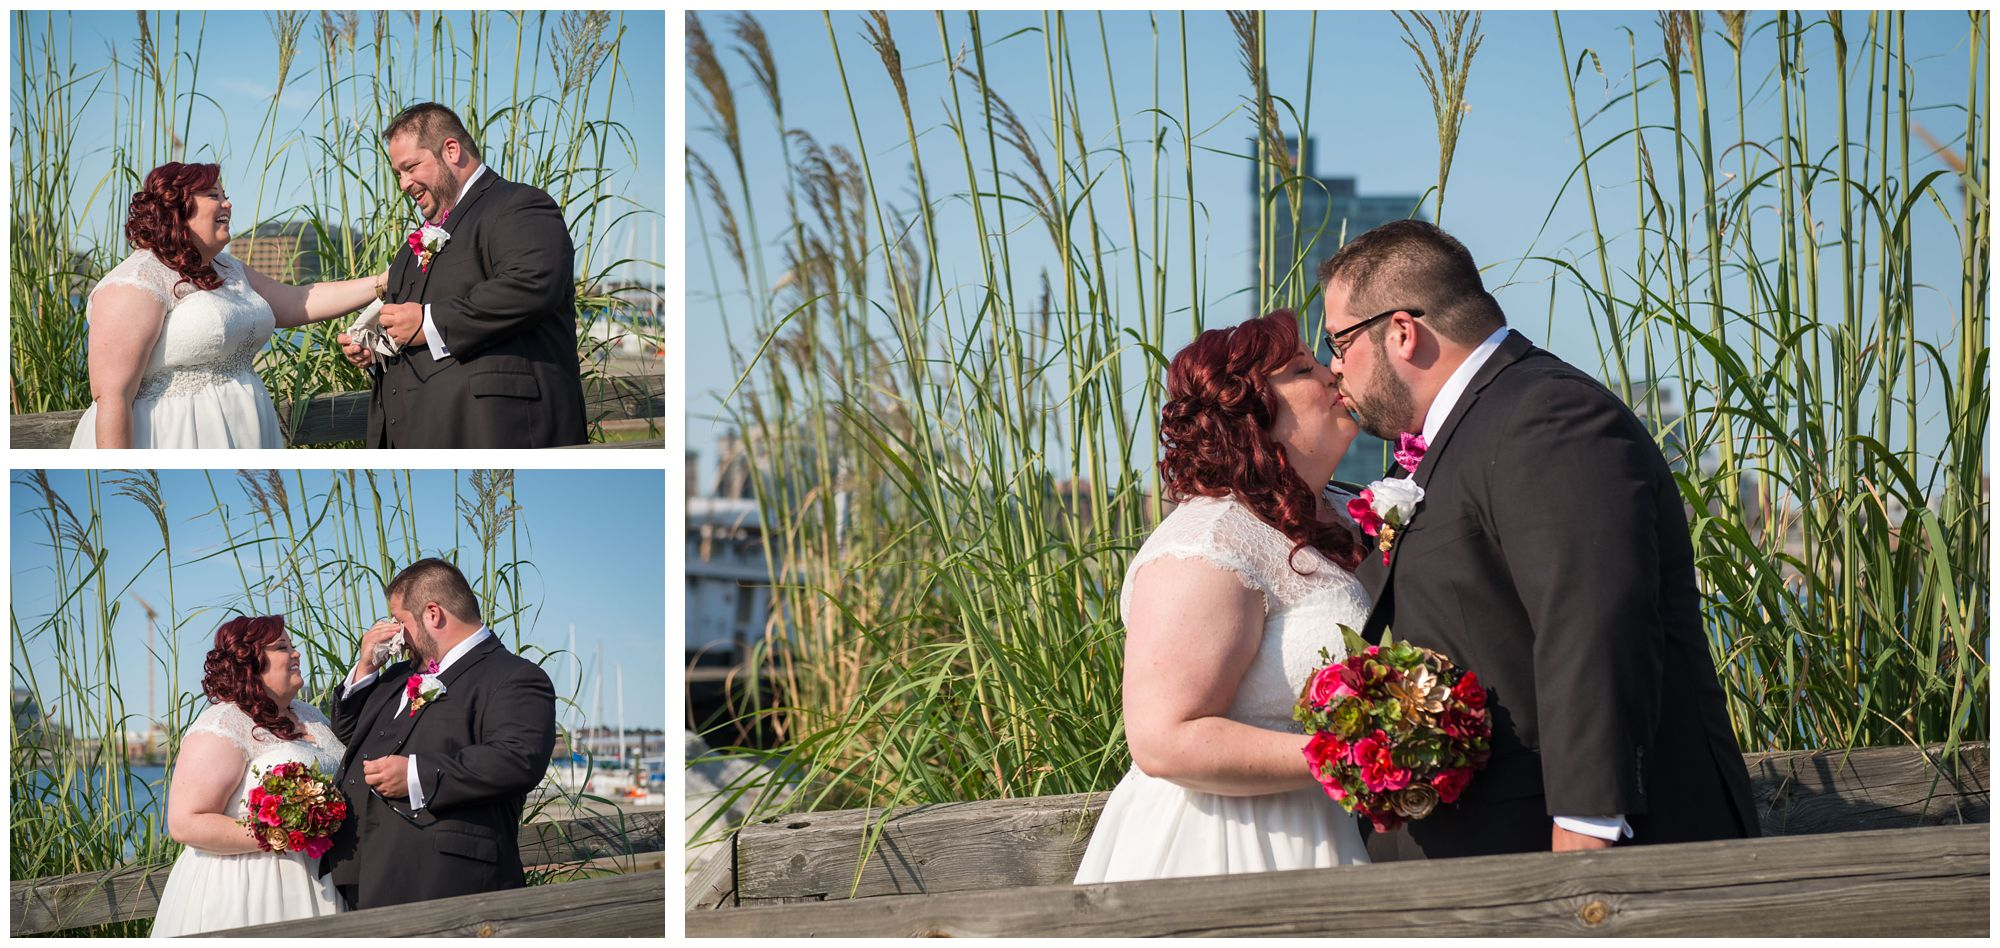 First look between bride and groom on Baltimore inner harbor